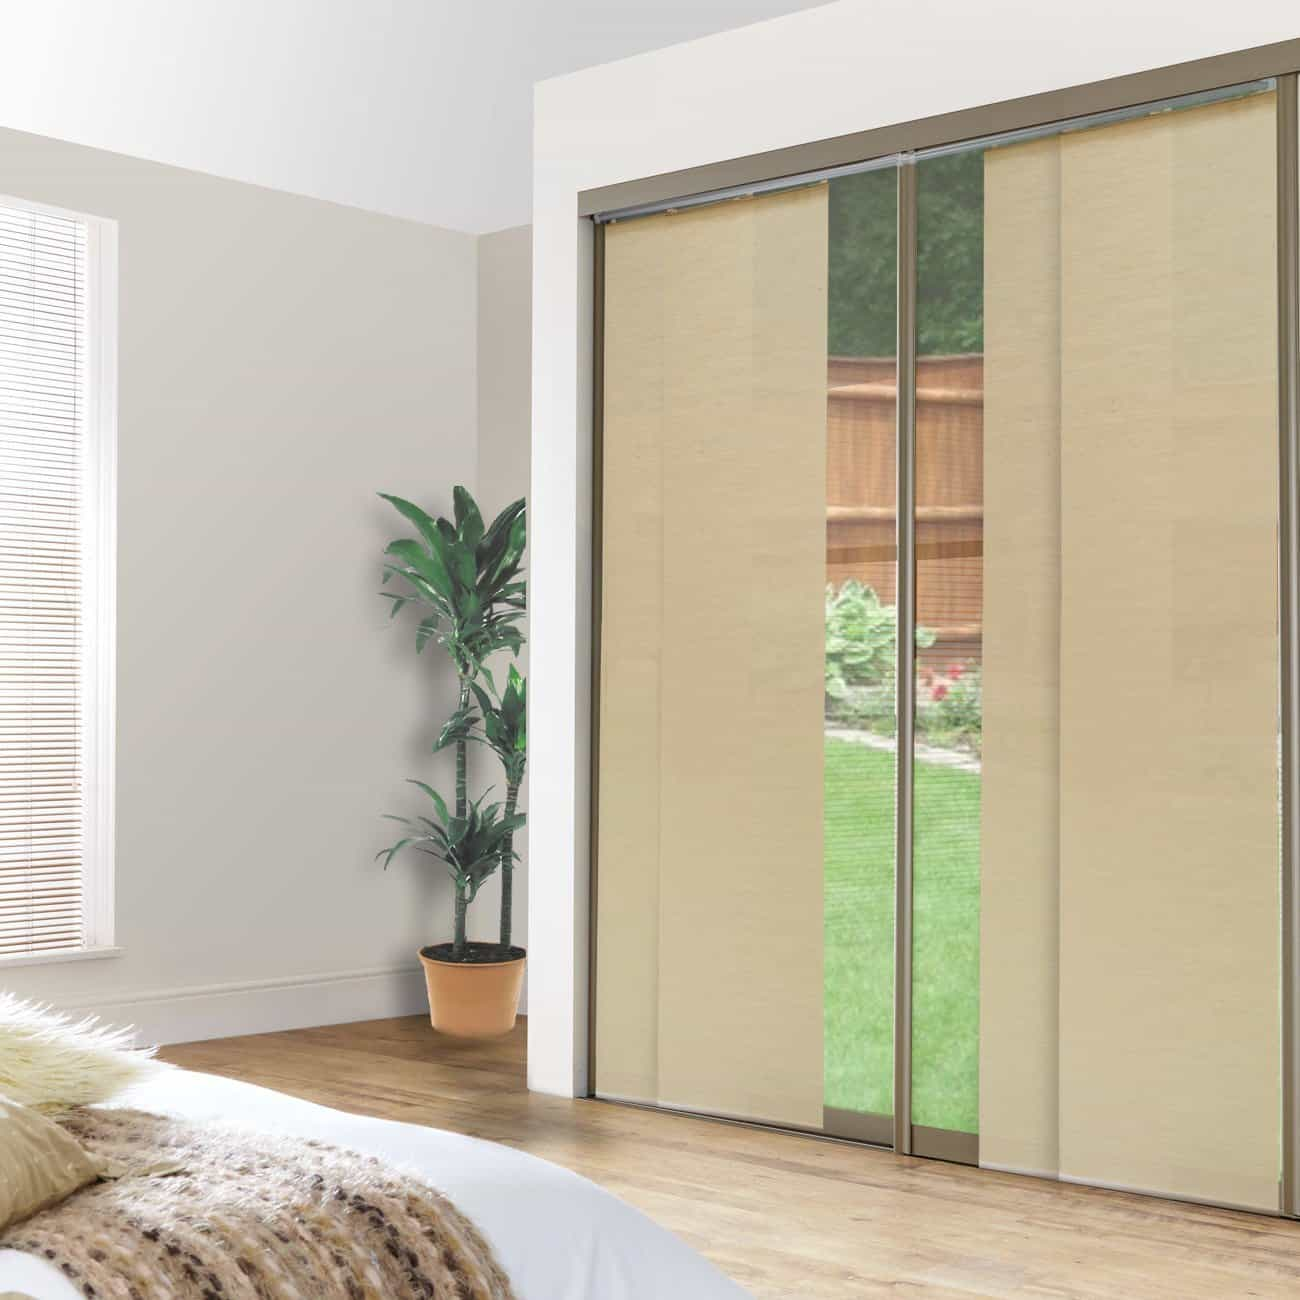 Chicology Double Rail Track Privacy Fabric Adjustable Sliding Panel track blinds, Cordless Shade, 80 x 96, Abaca Alabaster